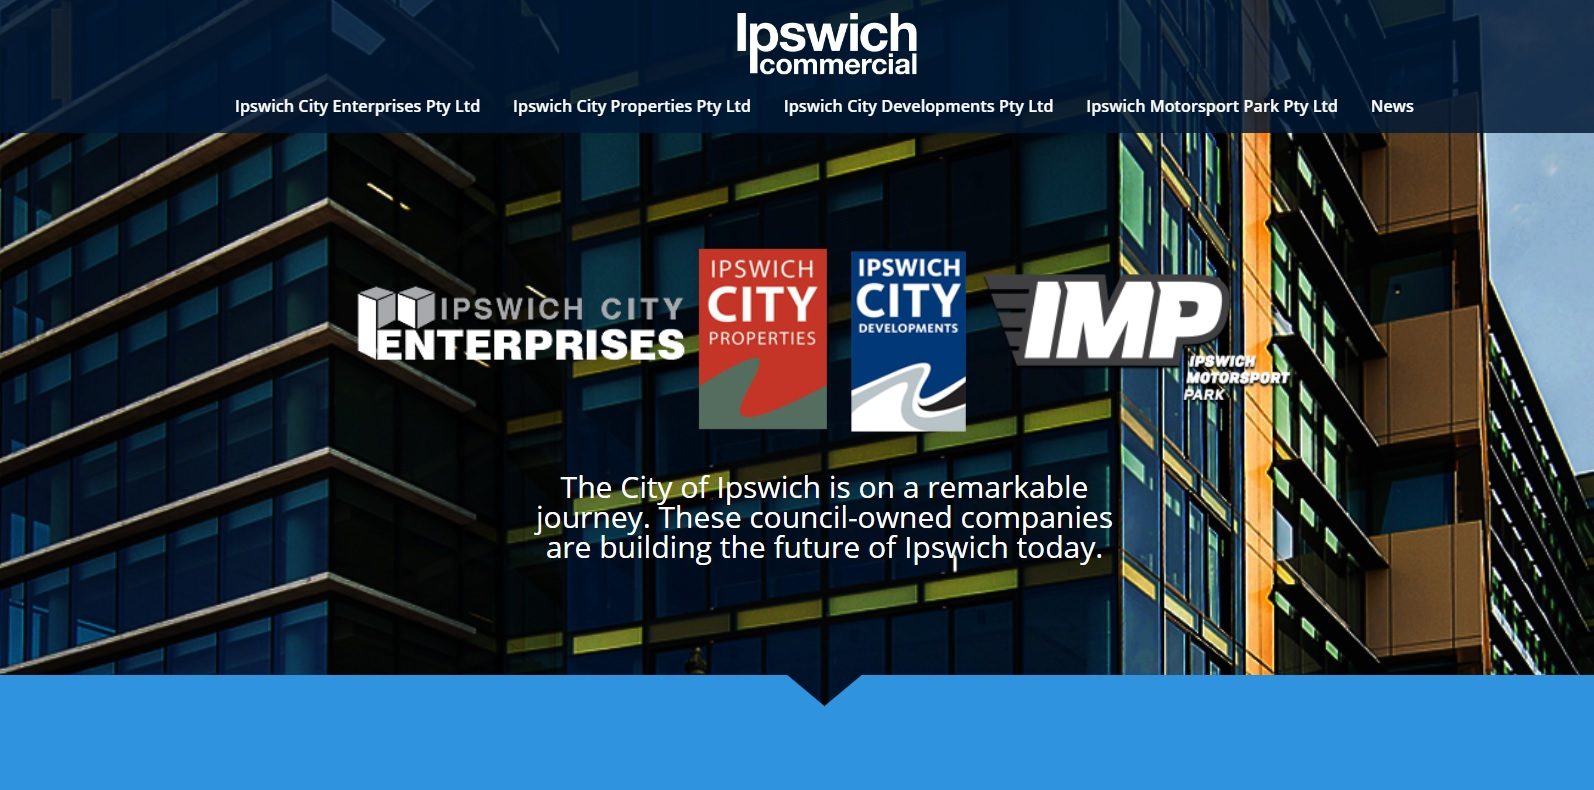 The Ipswich Commercial website, launched this year to boost transparency around council-owned companies.